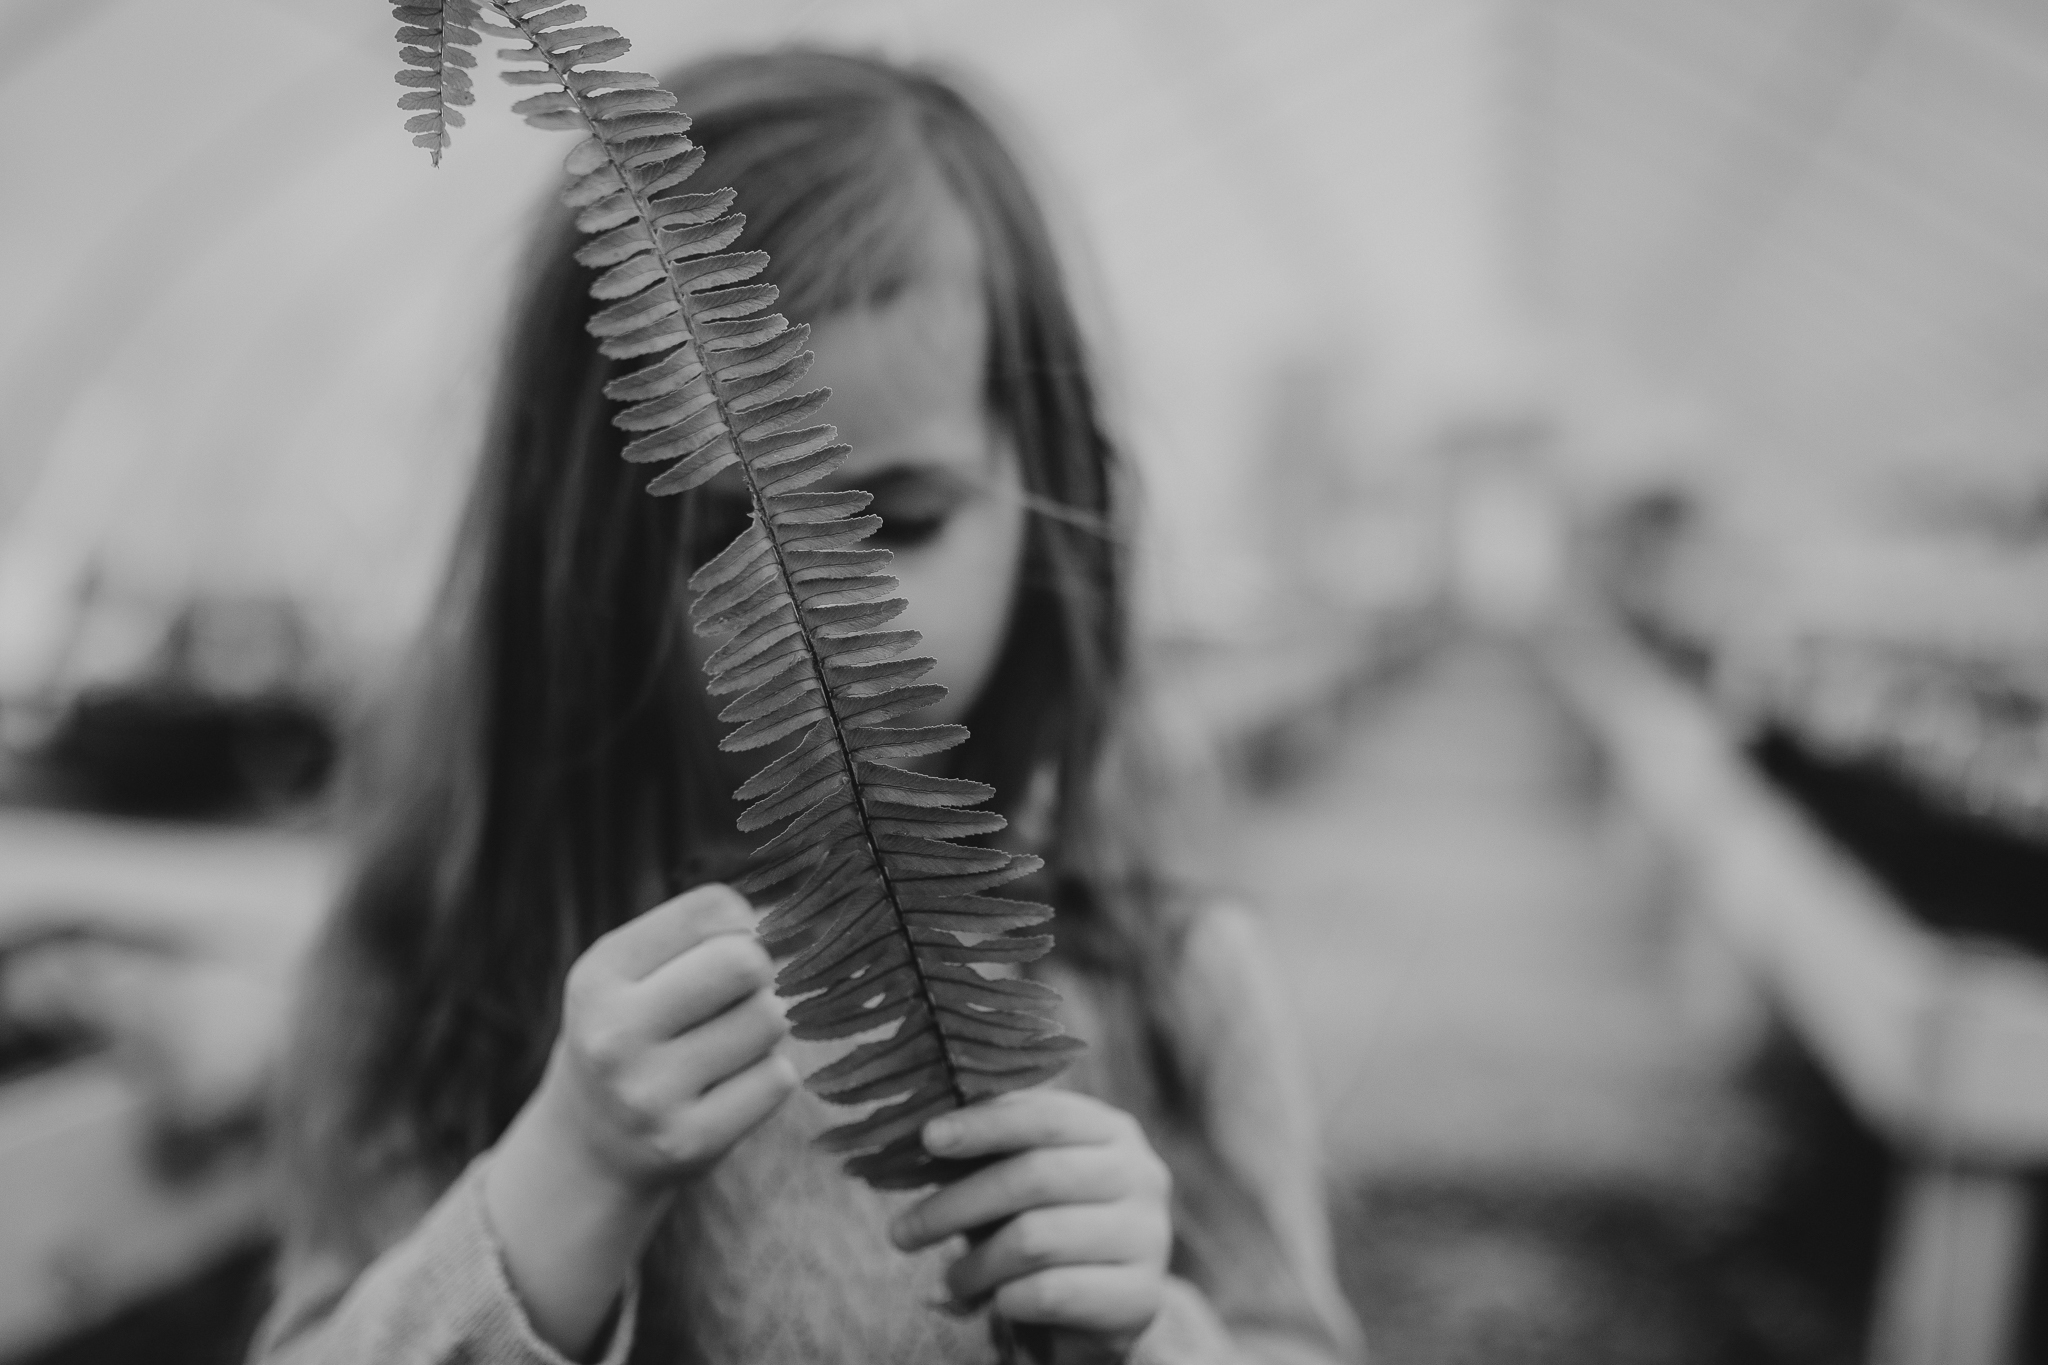 black and white portrait leaf fern plant greenhouse hands details lifestyle documentary family Ashburn Loudoun northern Virginia  childhood Marti Austin Photography